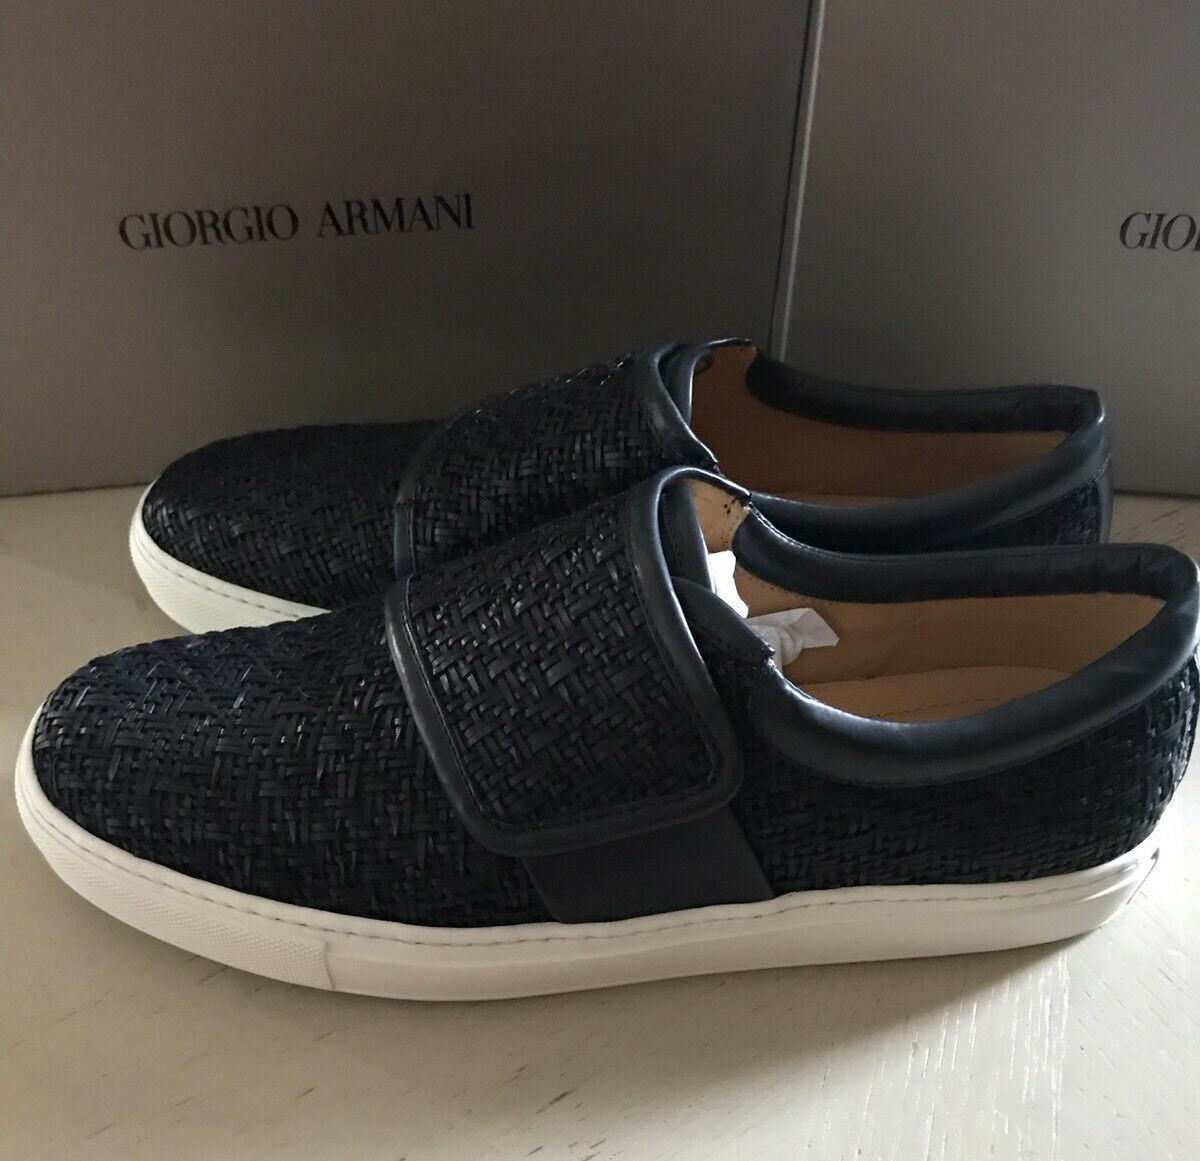 New $1475 Giorgio Armani Mens Leather Sneakers Shoes Dark Blue 8 US 1J085 Italy